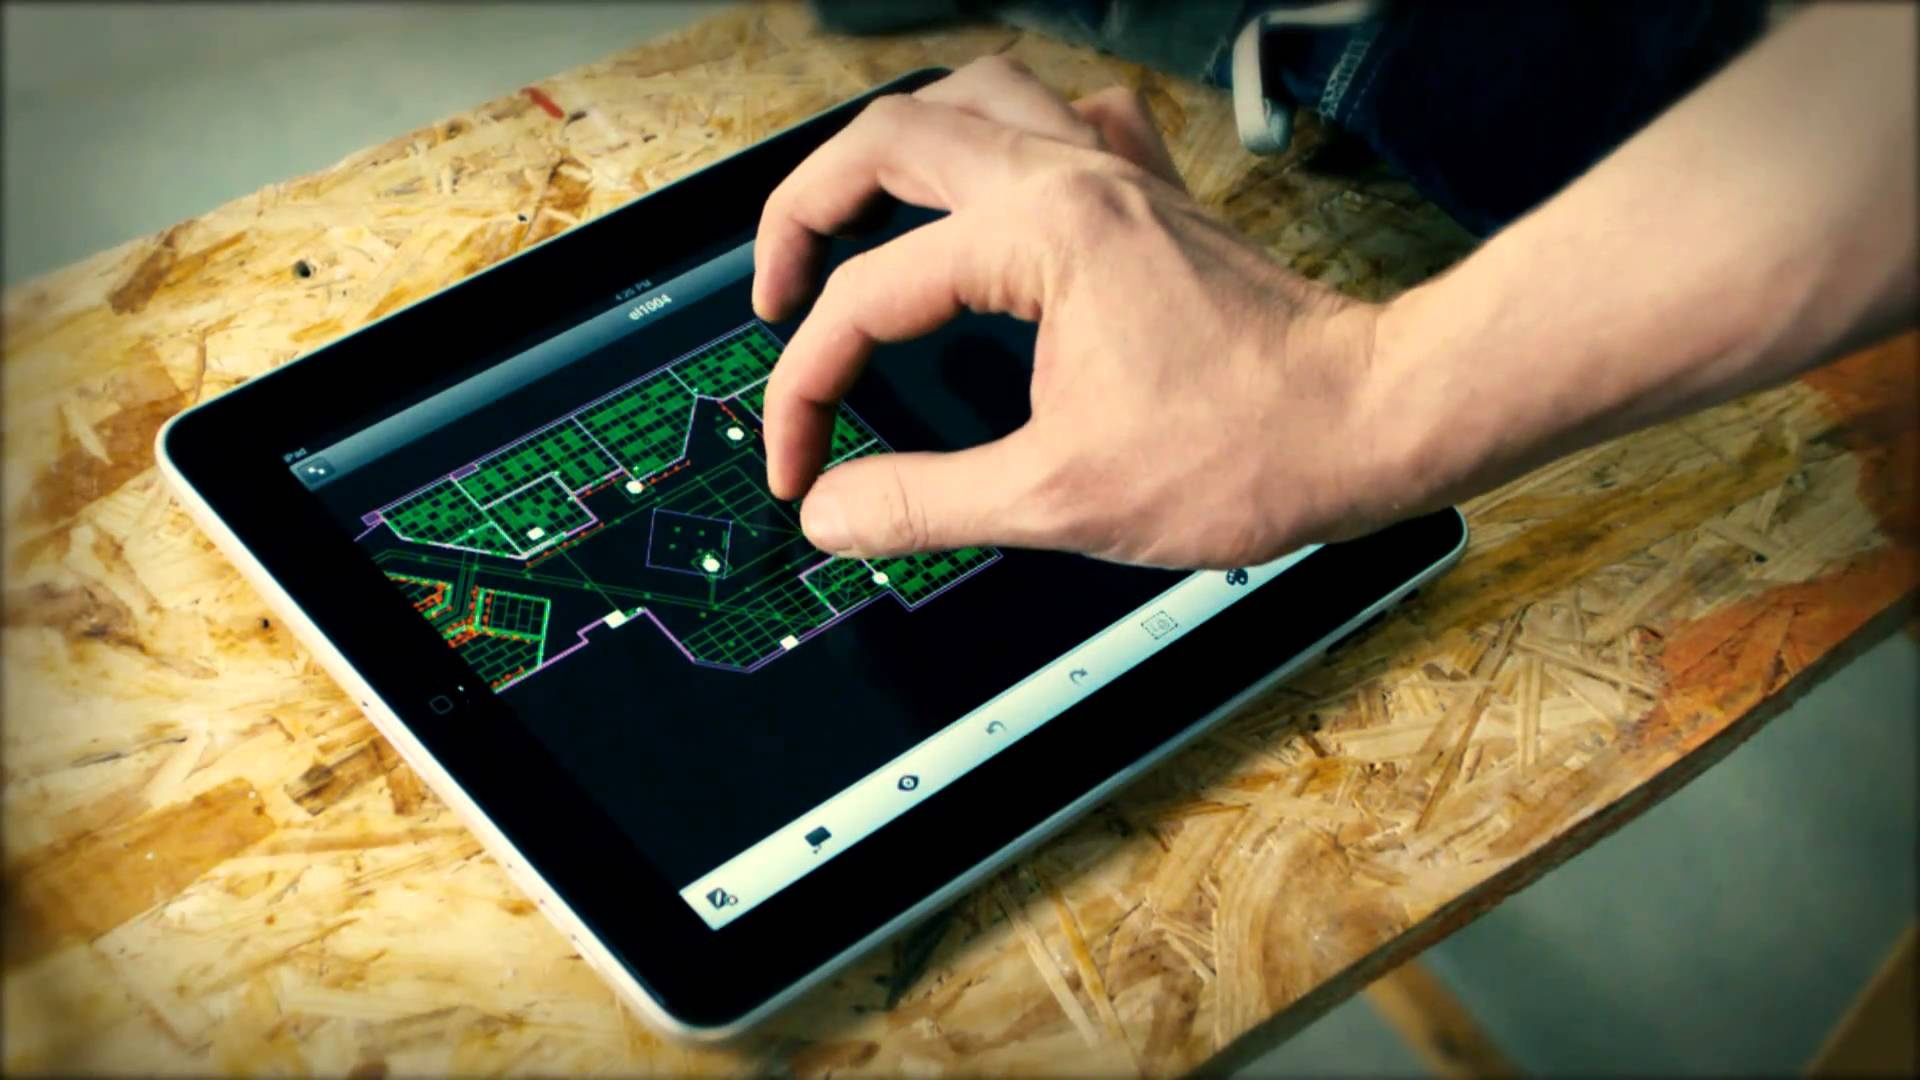 AutoCad 360 for iPad Pro